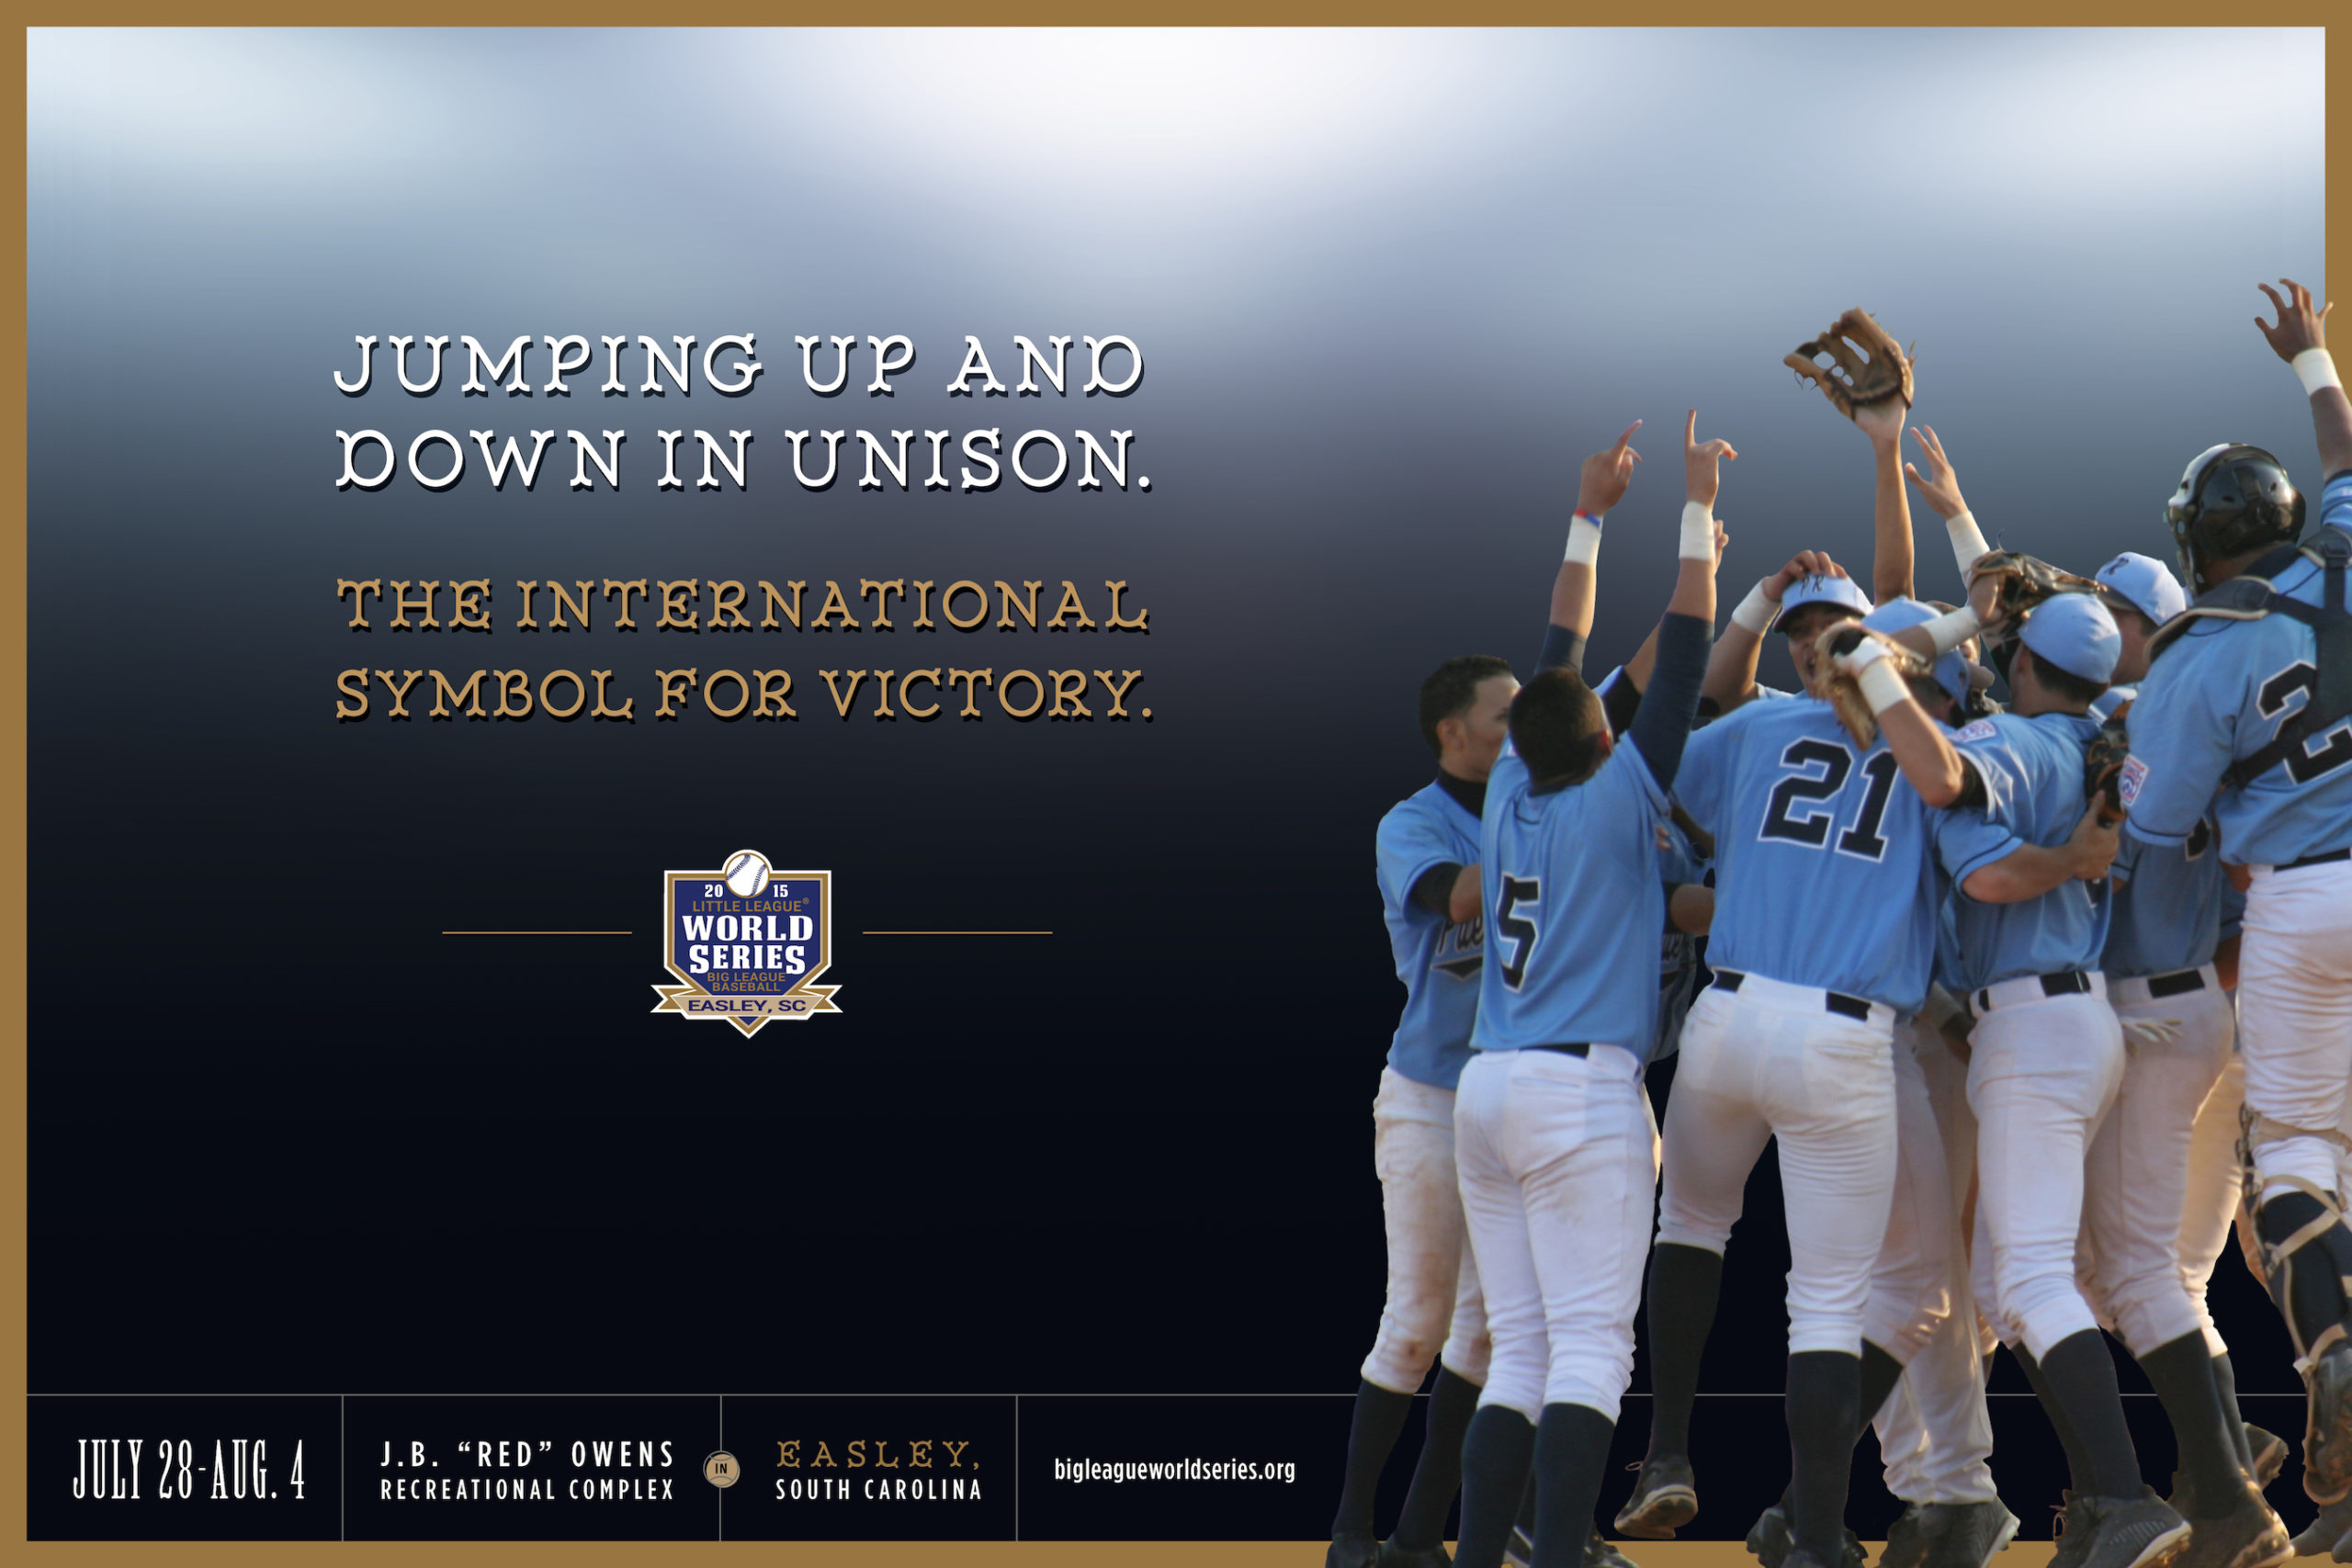 Big-League-World-Series-baseball-poster-advertising-copywriting-Lochness-Marketing-victory